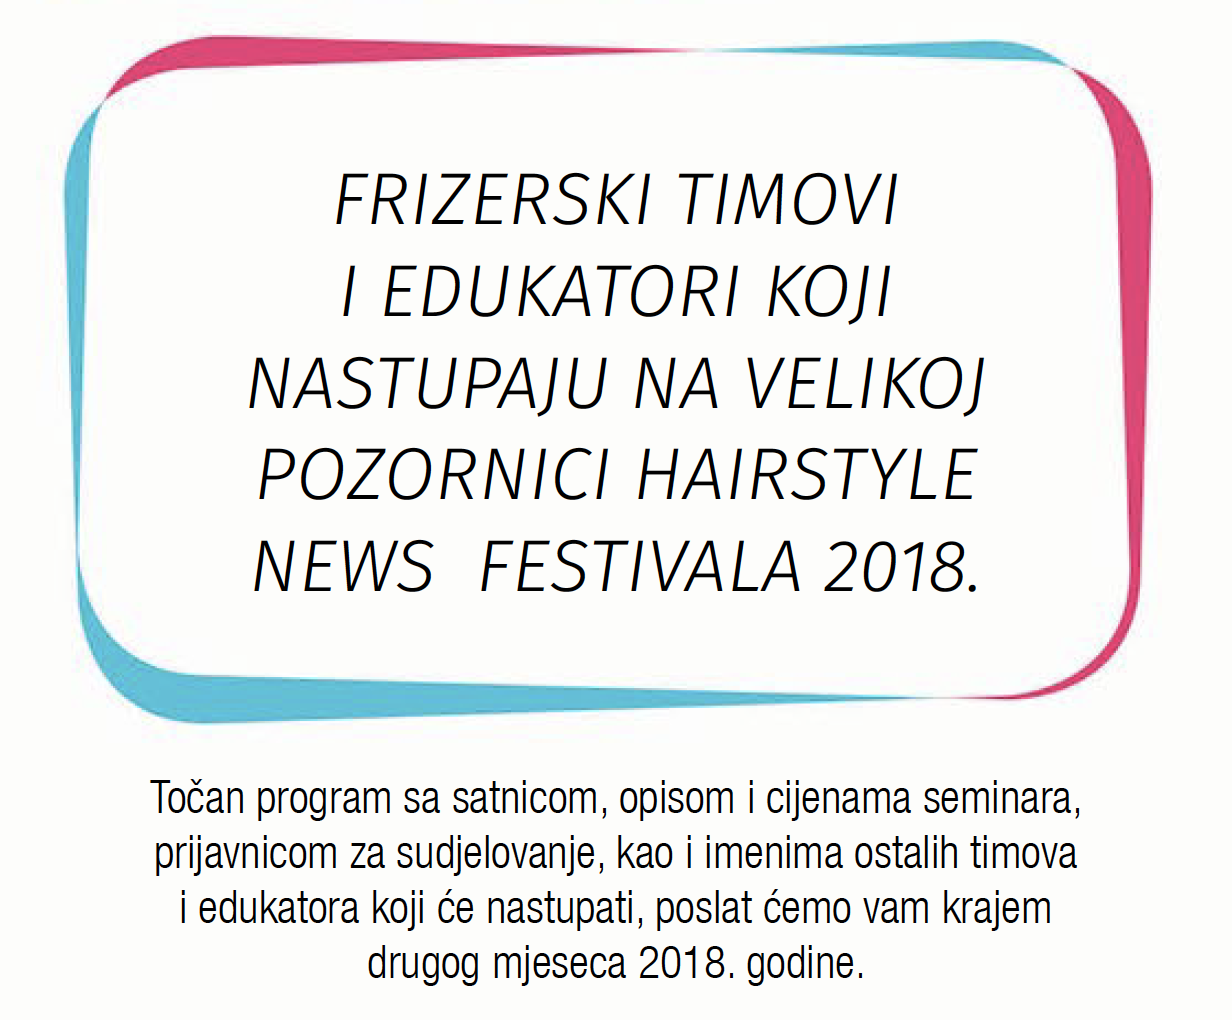 Hairstyle News 2018